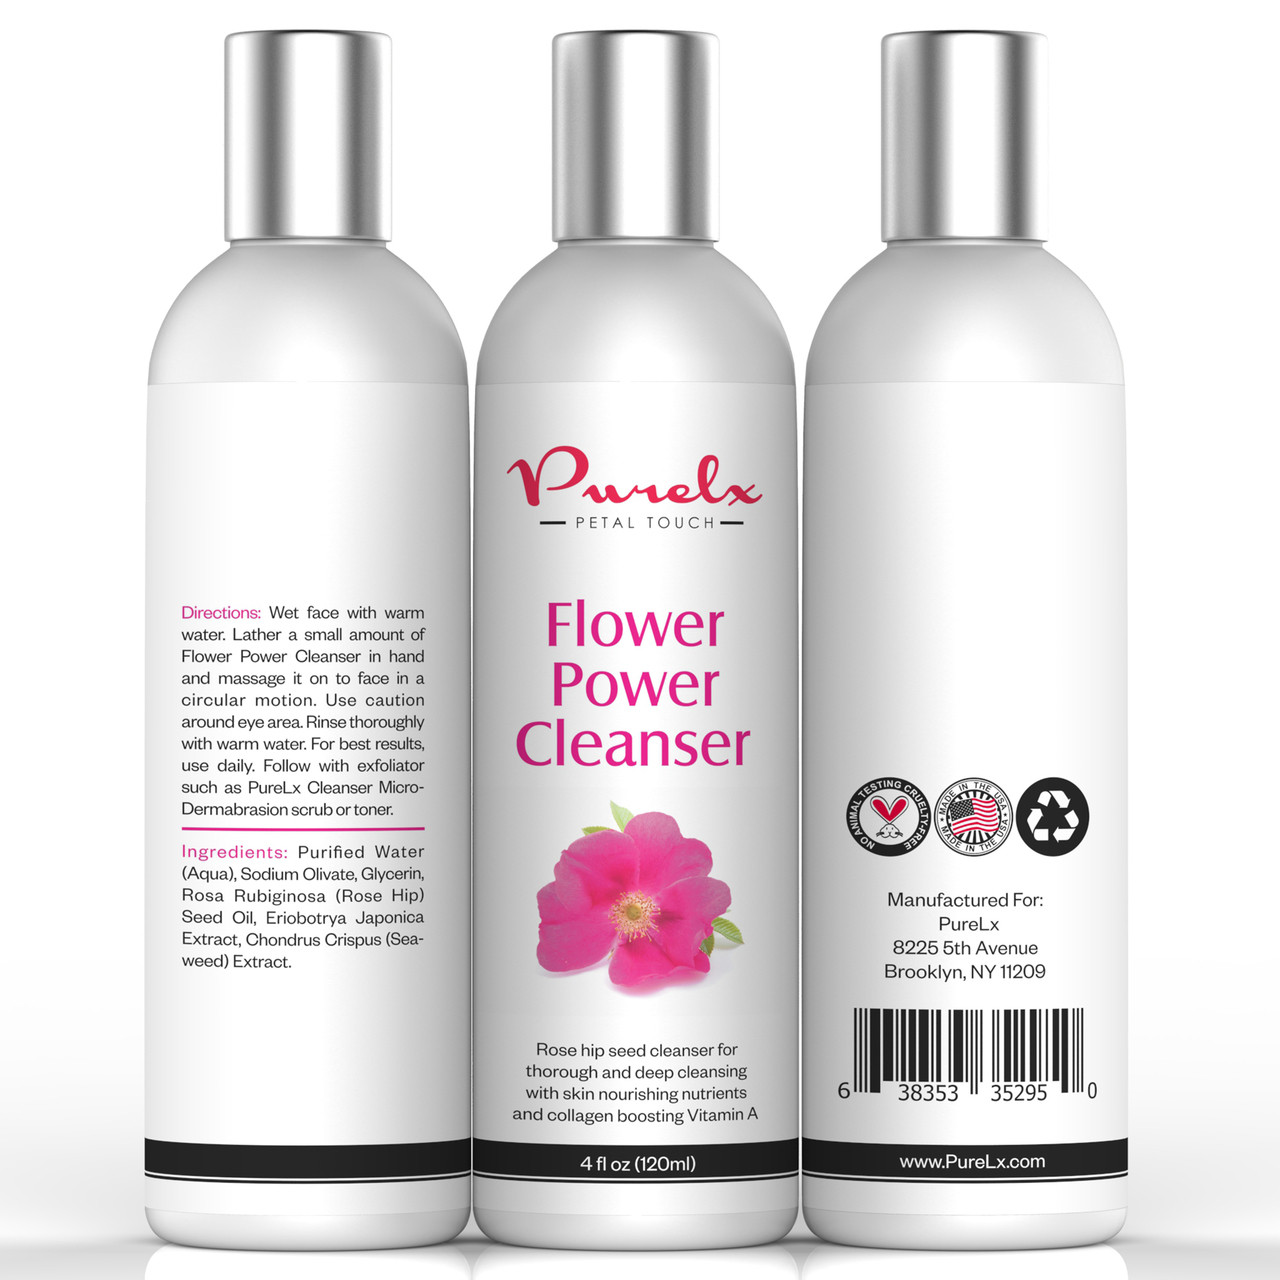 Flower Power Cleanser is rich in Vitamins A, C E and F which contribute in nourishing the skin and boosting collagen production helping firm up the skin and keep it looking younger.